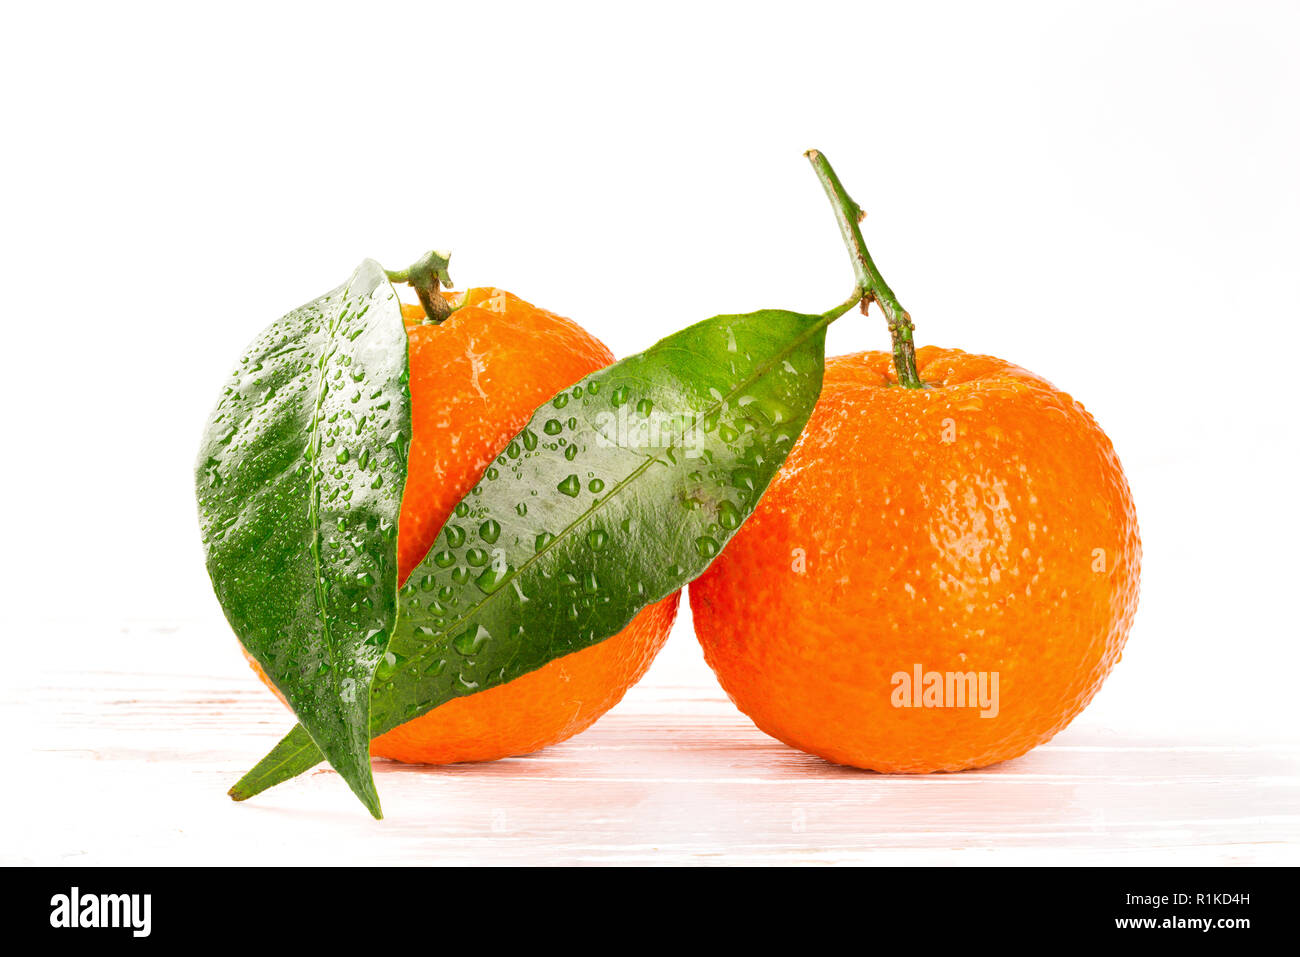 Tangerines with leaves and water drops on white wooden background, closeup - Stock Image